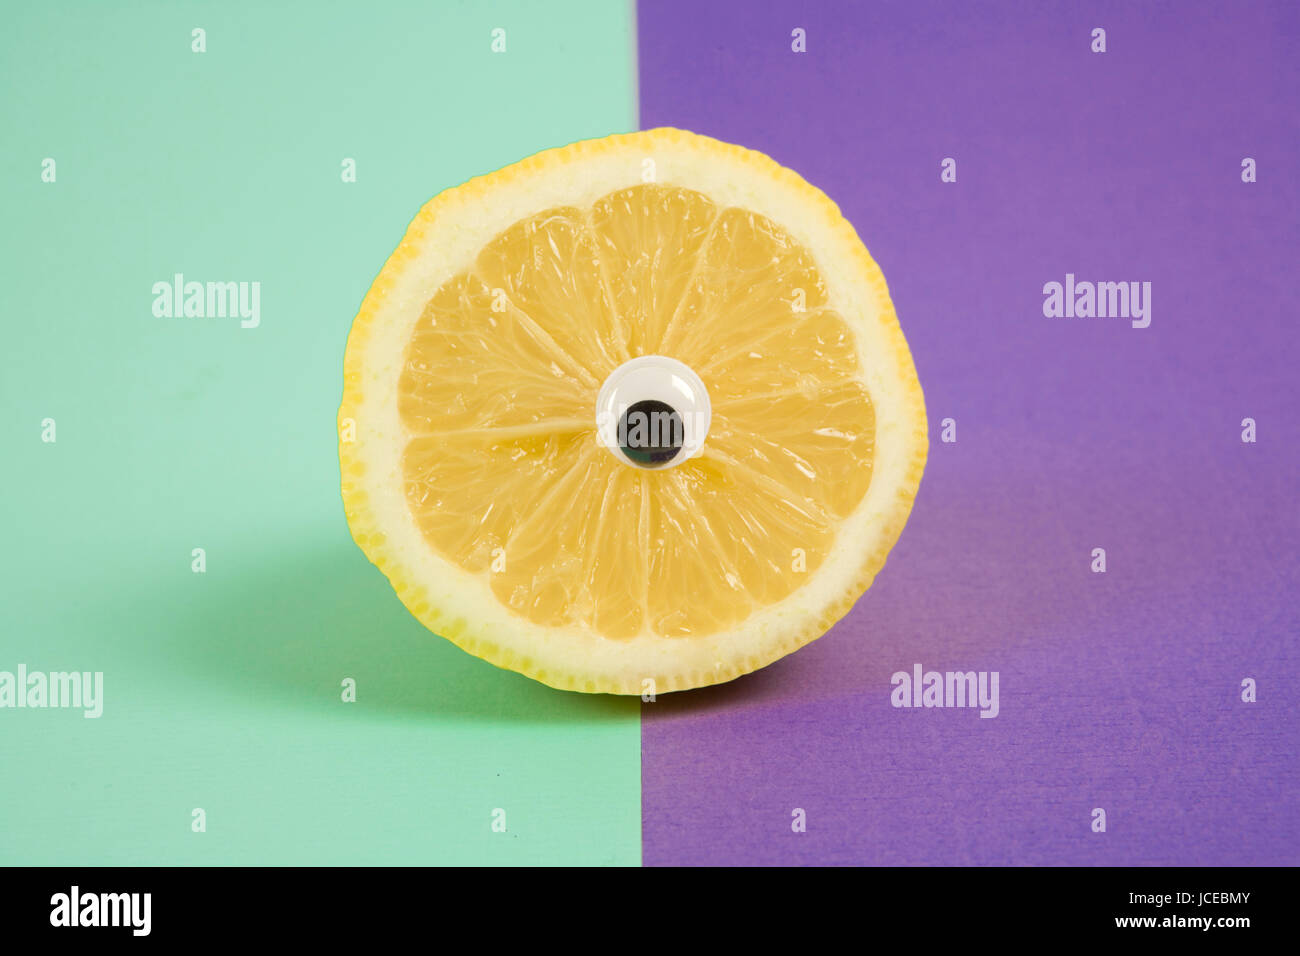 Minimal still life photography.An lemon cut in half and wearing doll's eyes like a cyclop. pop bi colored background - Stock Image